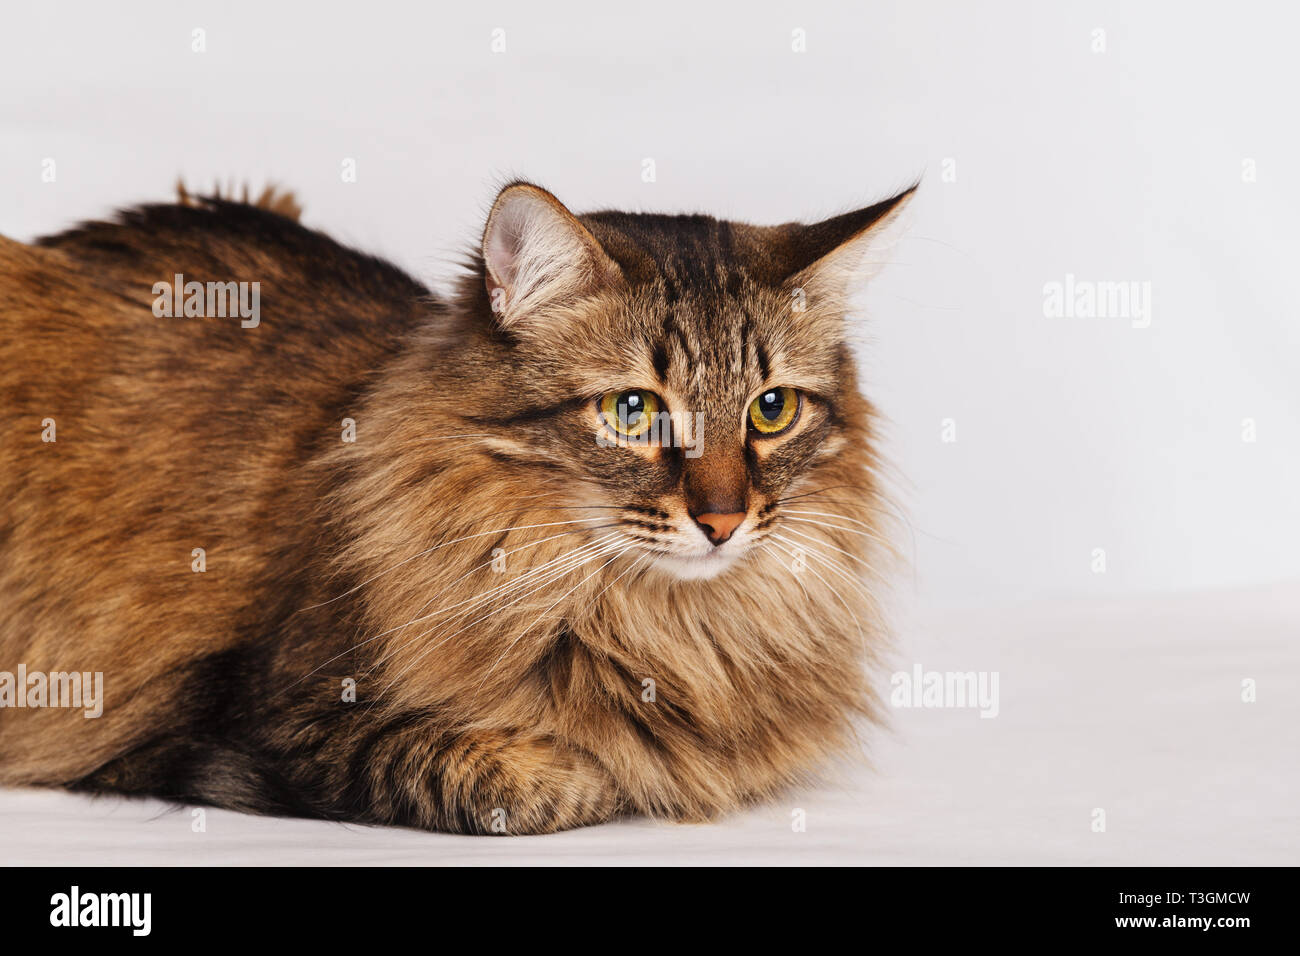 Gray tabby furry cute cat lying on a light wall background, close-up. Striped fluffy cat with a long mustache portrait. Stock Photo